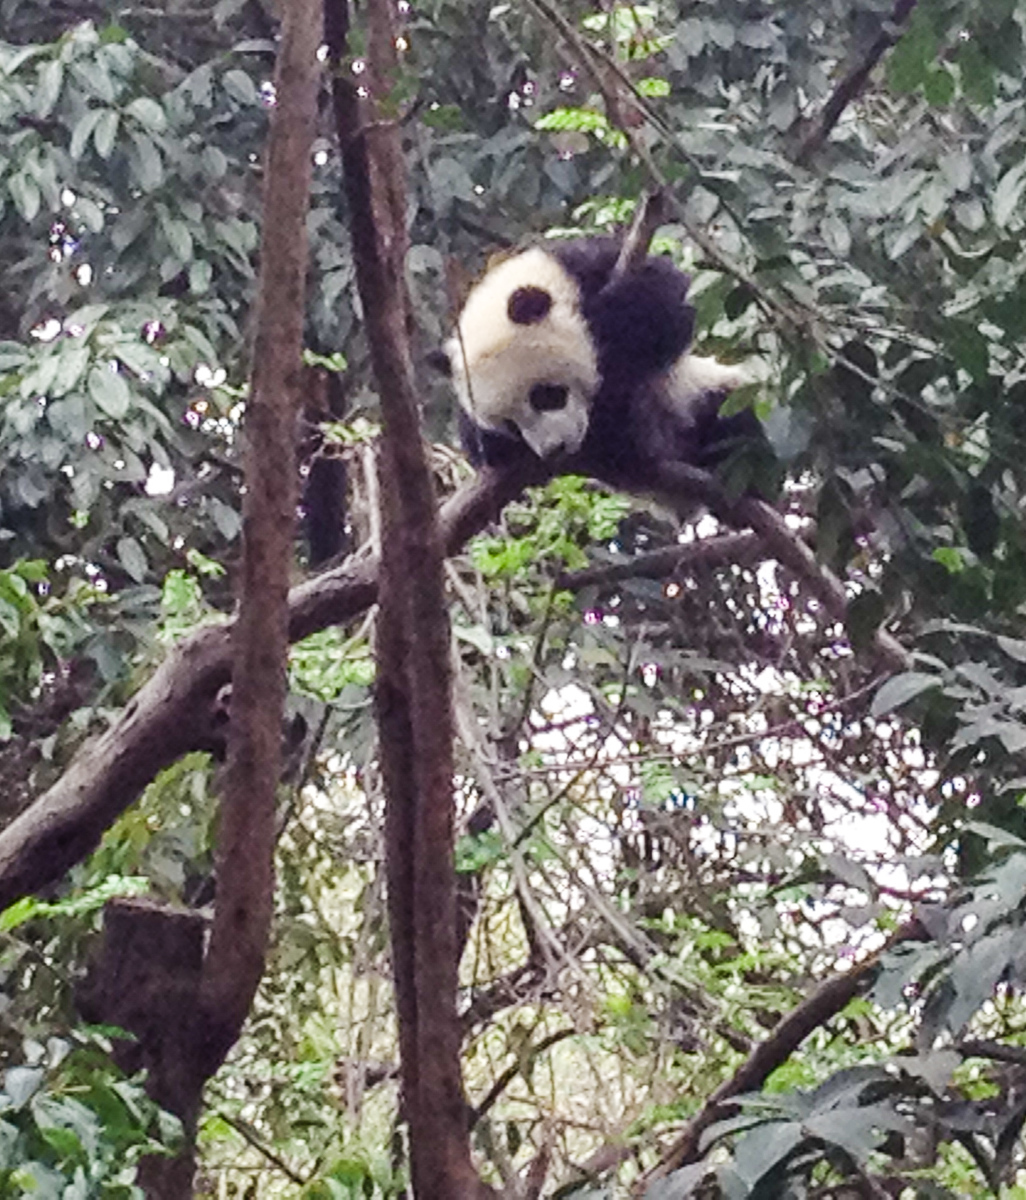 Young panda climbing in tree branches in Chengdu, China